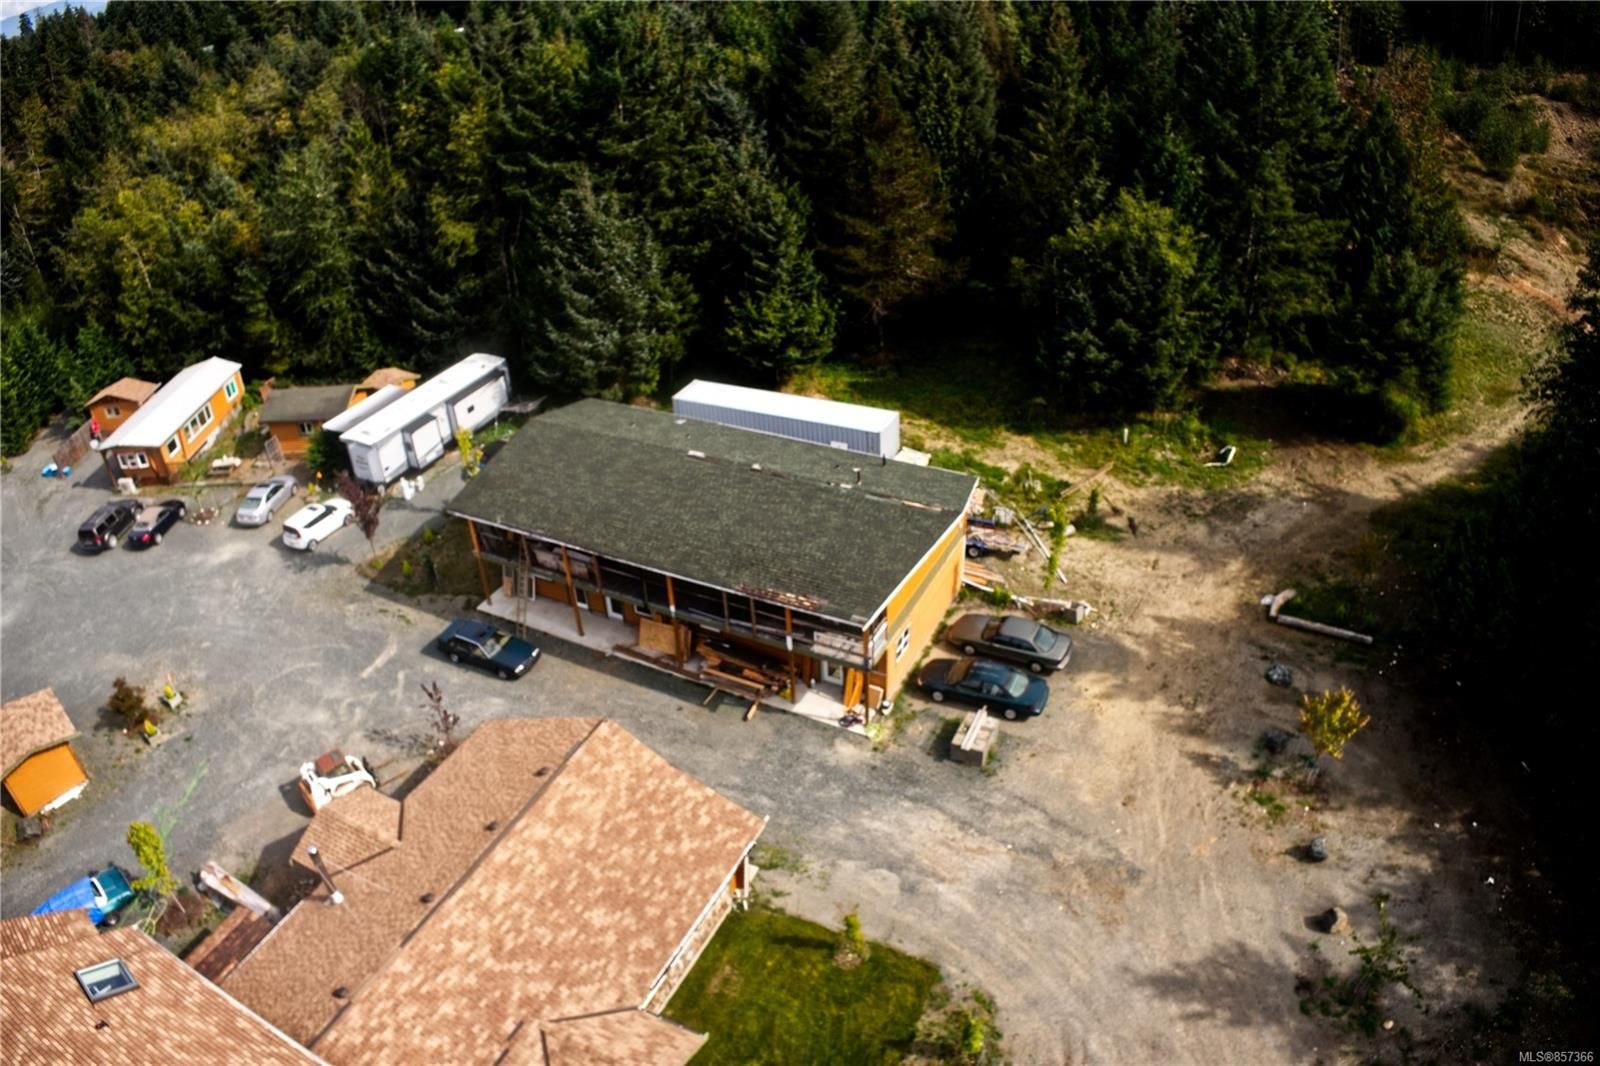 Photo 6: Photos: 1747 Nahmint Rd in : PQ Qualicum North Mixed Use for sale (Parksville/Qualicum)  : MLS®# 857366